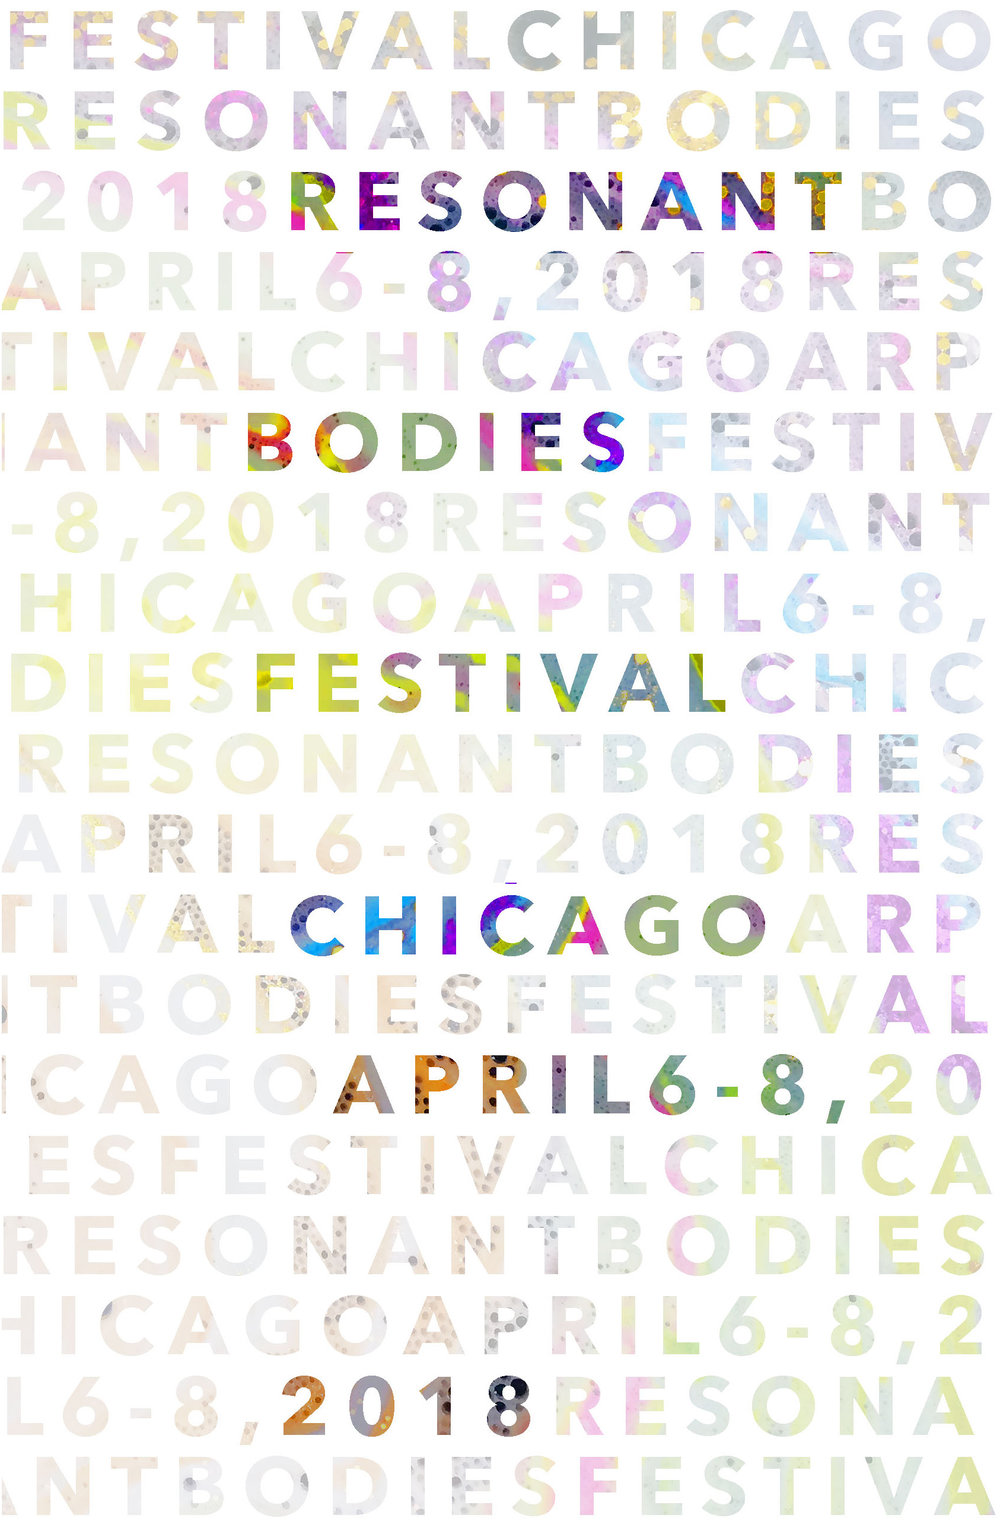 chicago booklet front cover.jpg